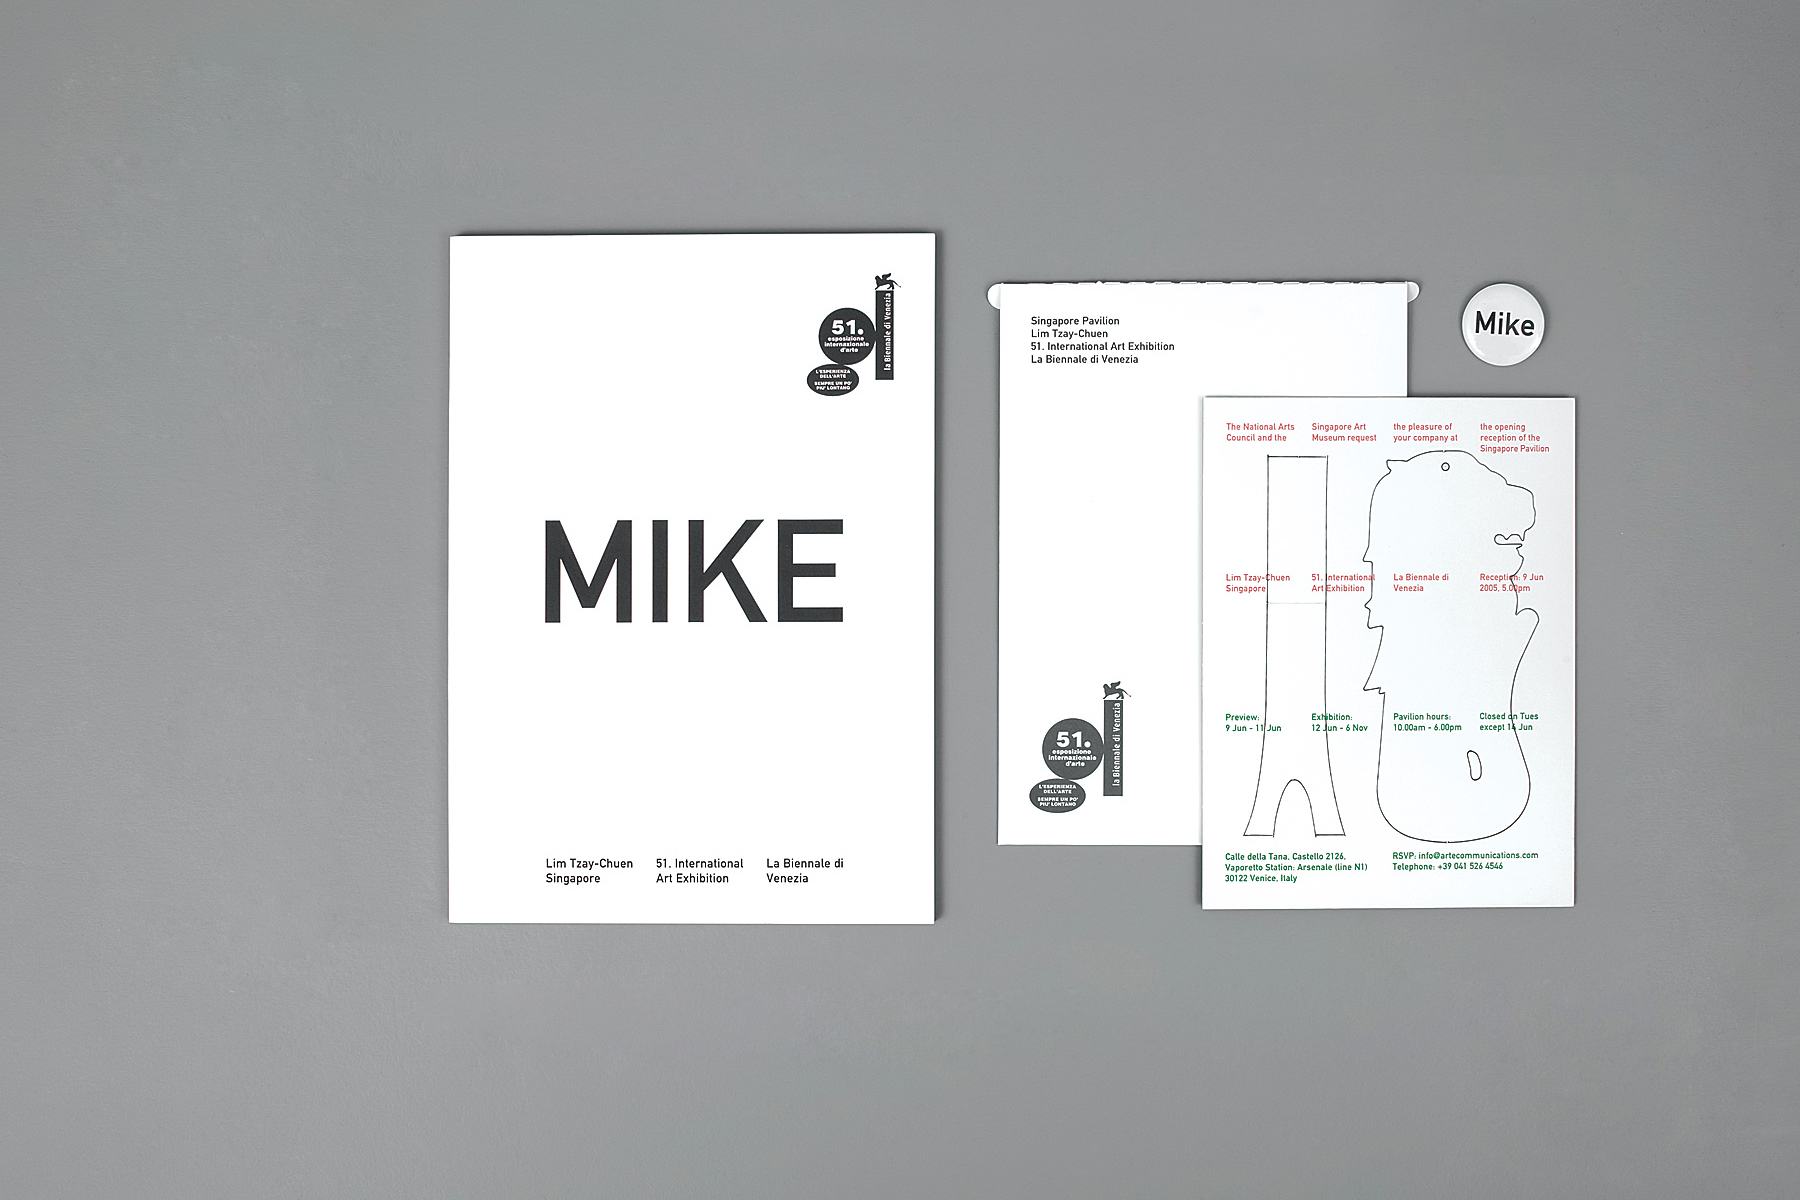 Mike-with-Web-Guides-New_3